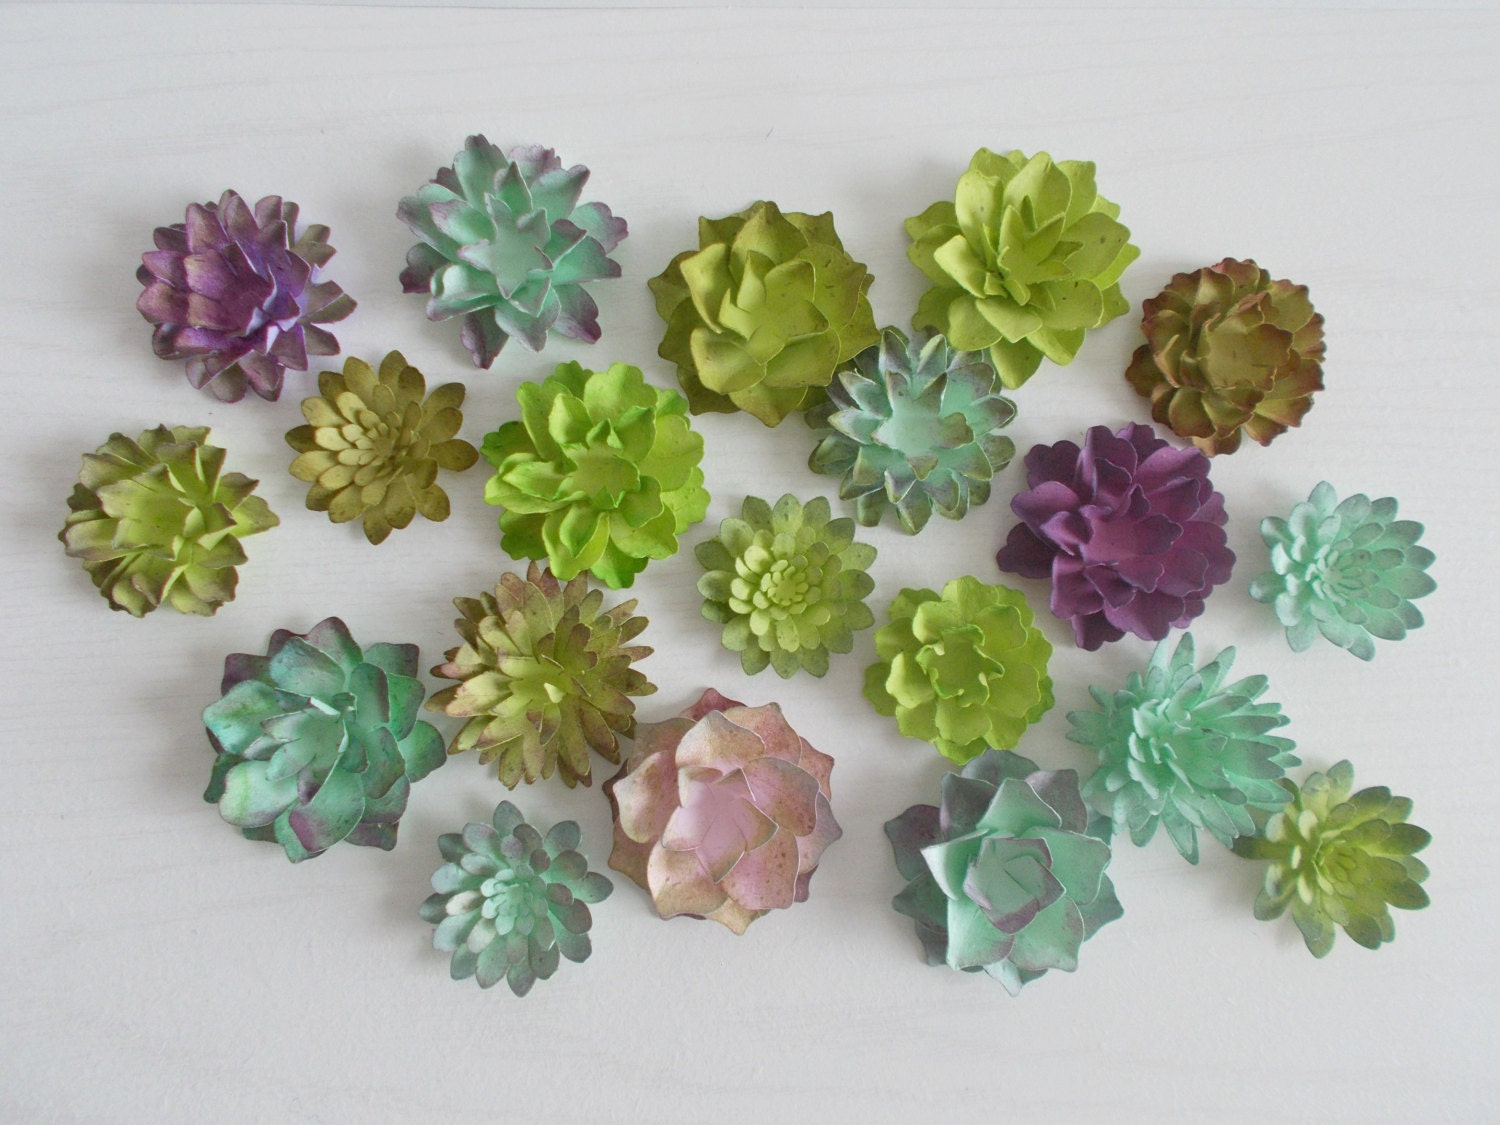 50 succulent favors made from plantable seed paper hand